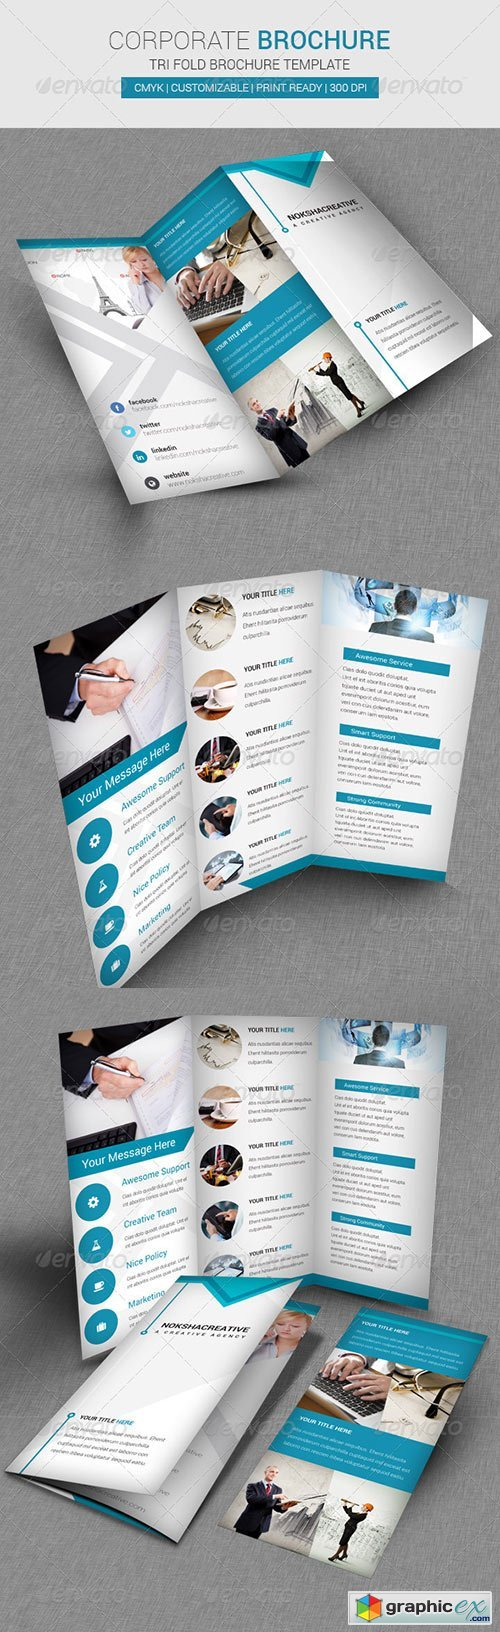 brochure template for photoshop cs6 thanks for writing this photoshop for composing multiple images am usually confused with things that straddle i